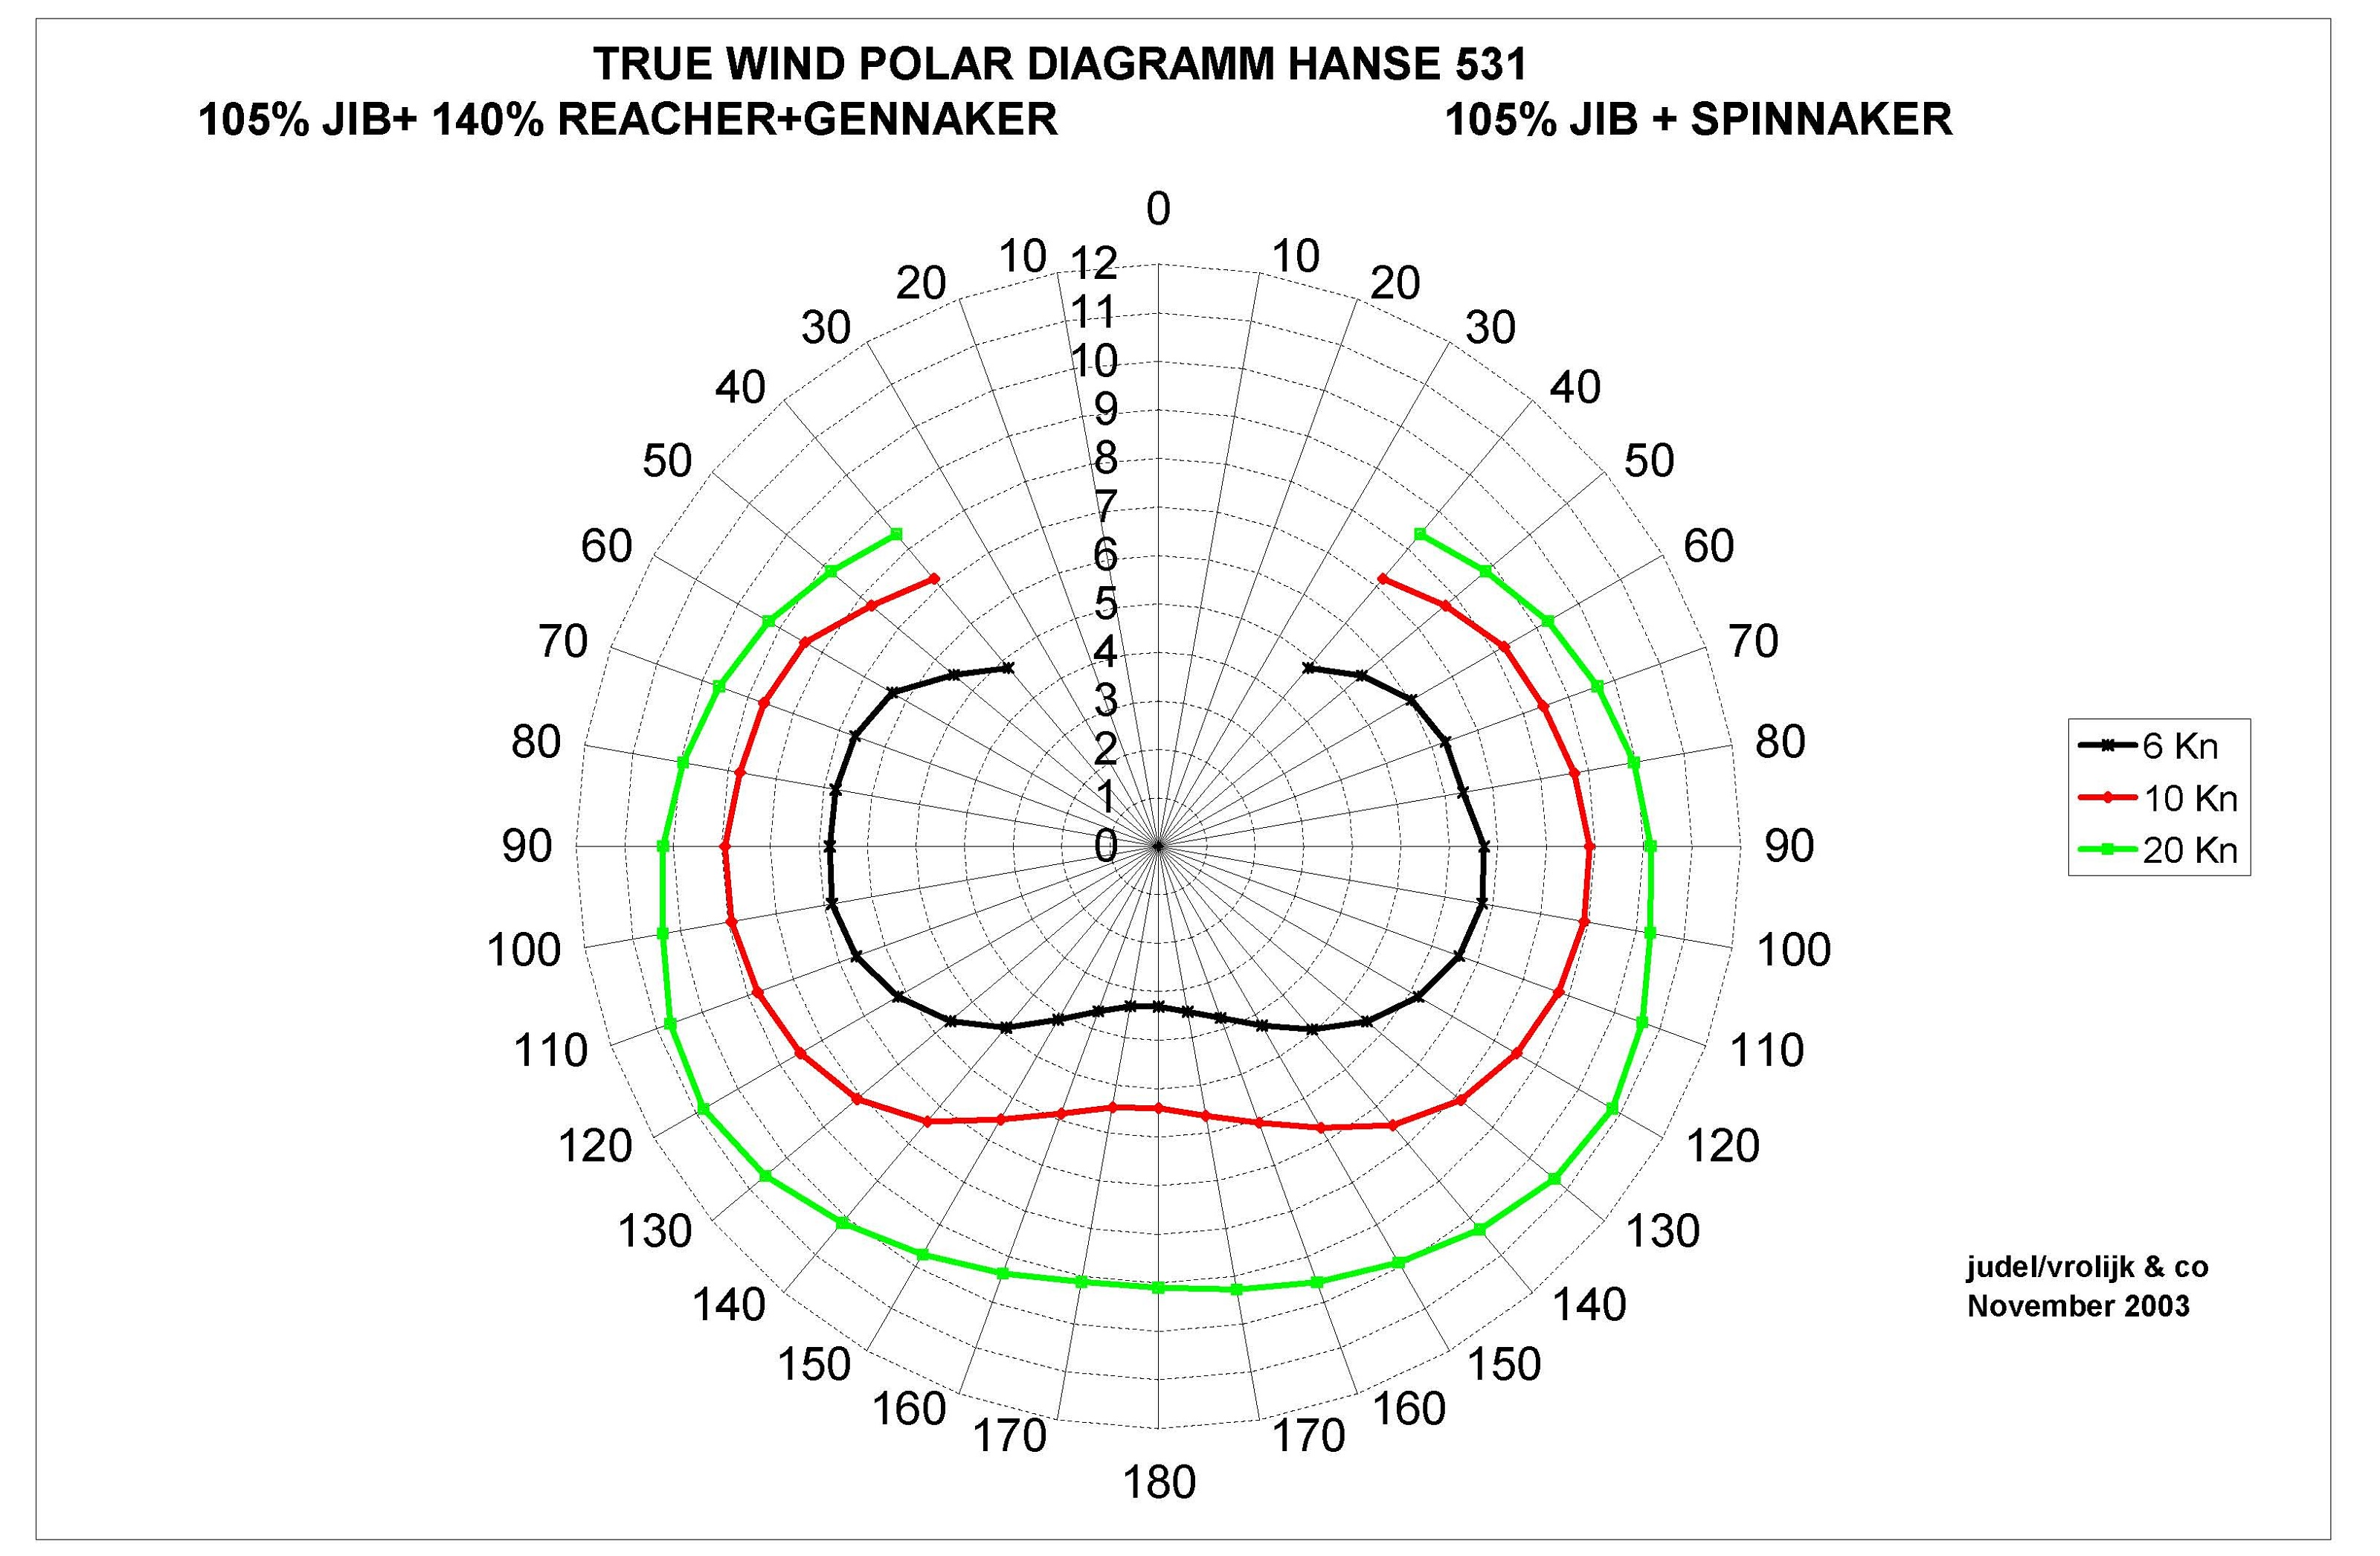 True wind polar area diagram